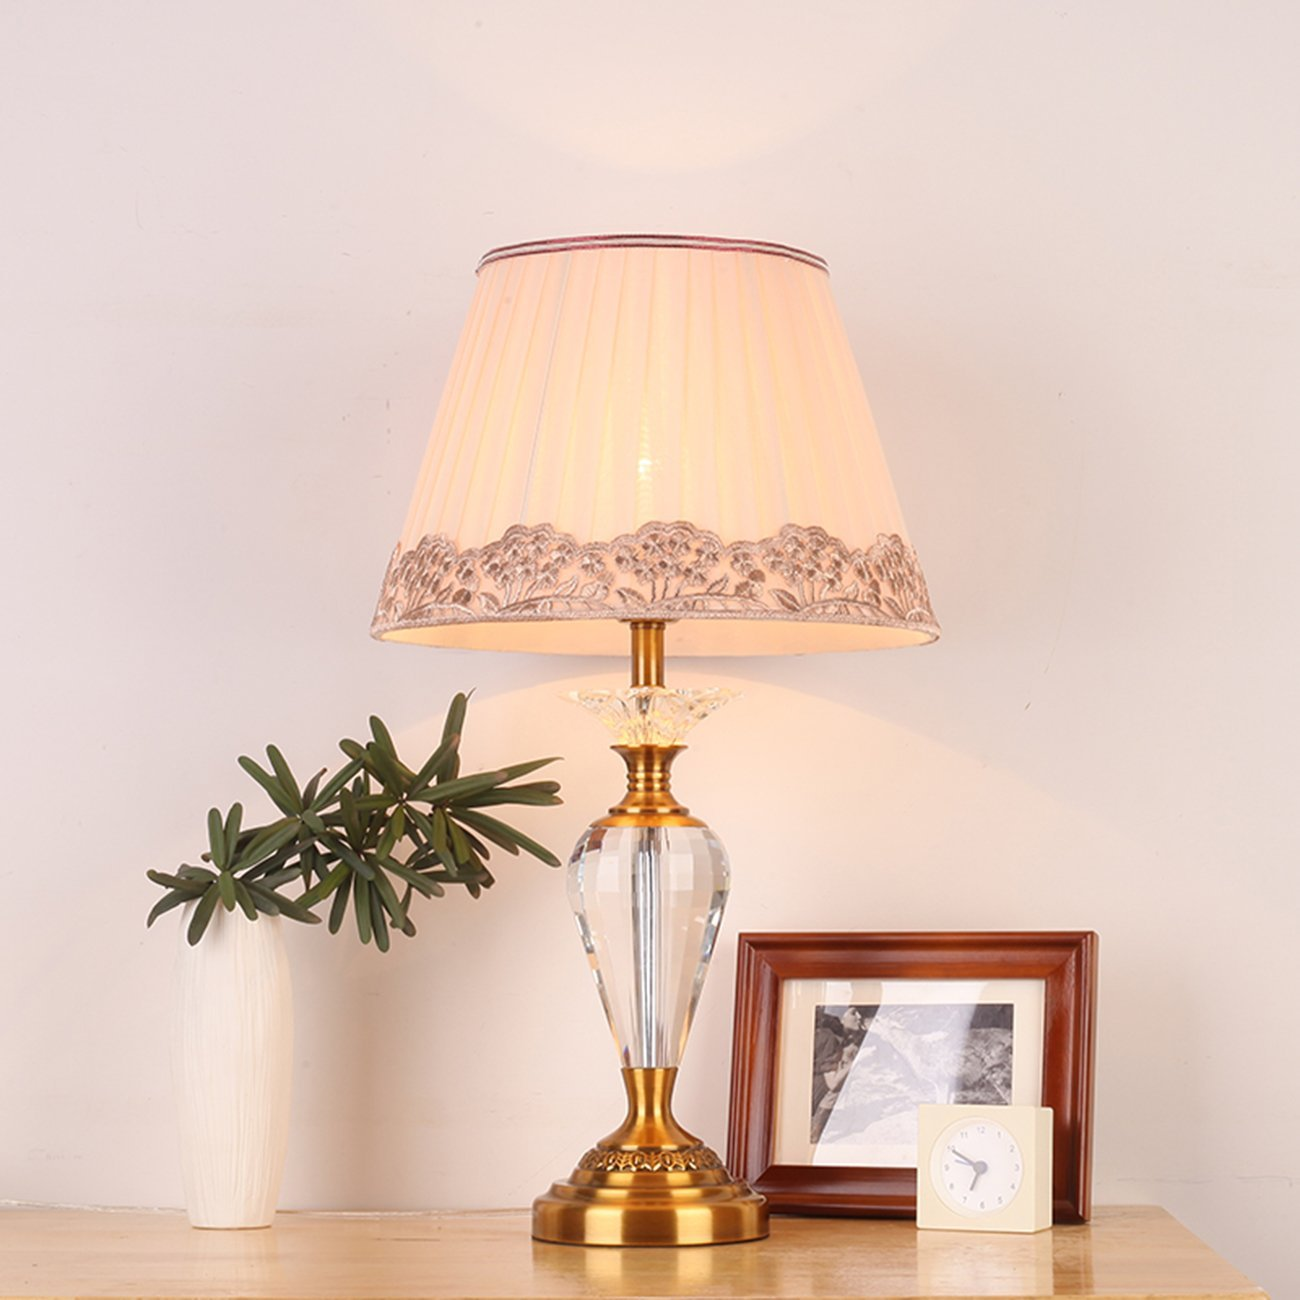 online get cheap crystal table lamps for bedroom aliexpress com ganeed crystal flower table lamps for living room bedroom 33 59cm 13